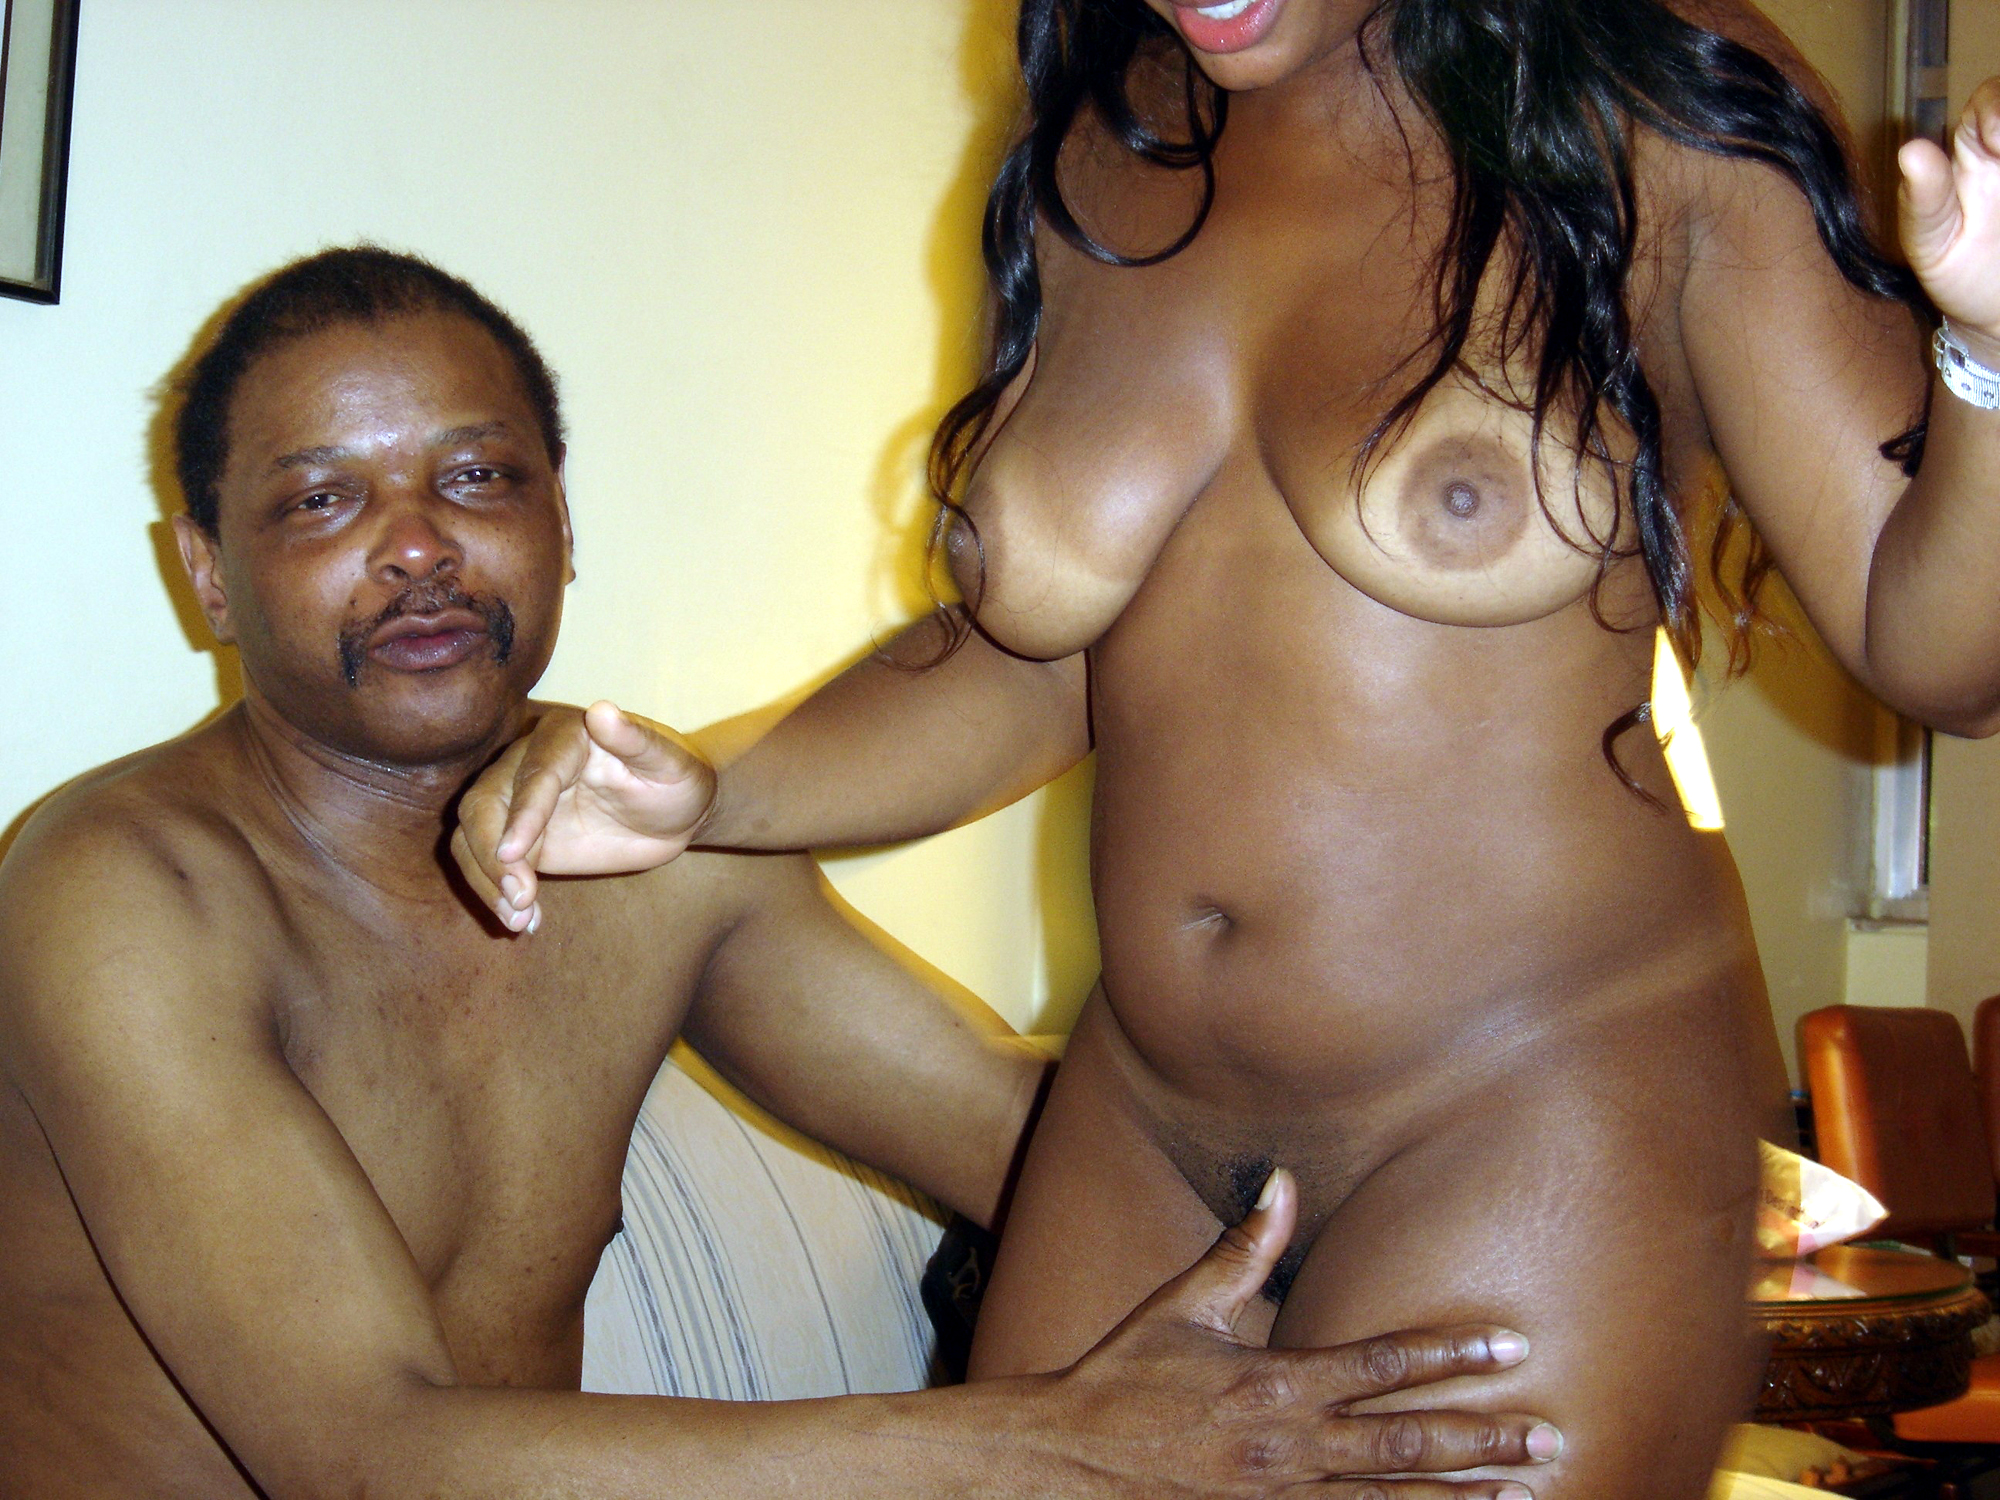 Sexy amateur ebony black tthats rough!